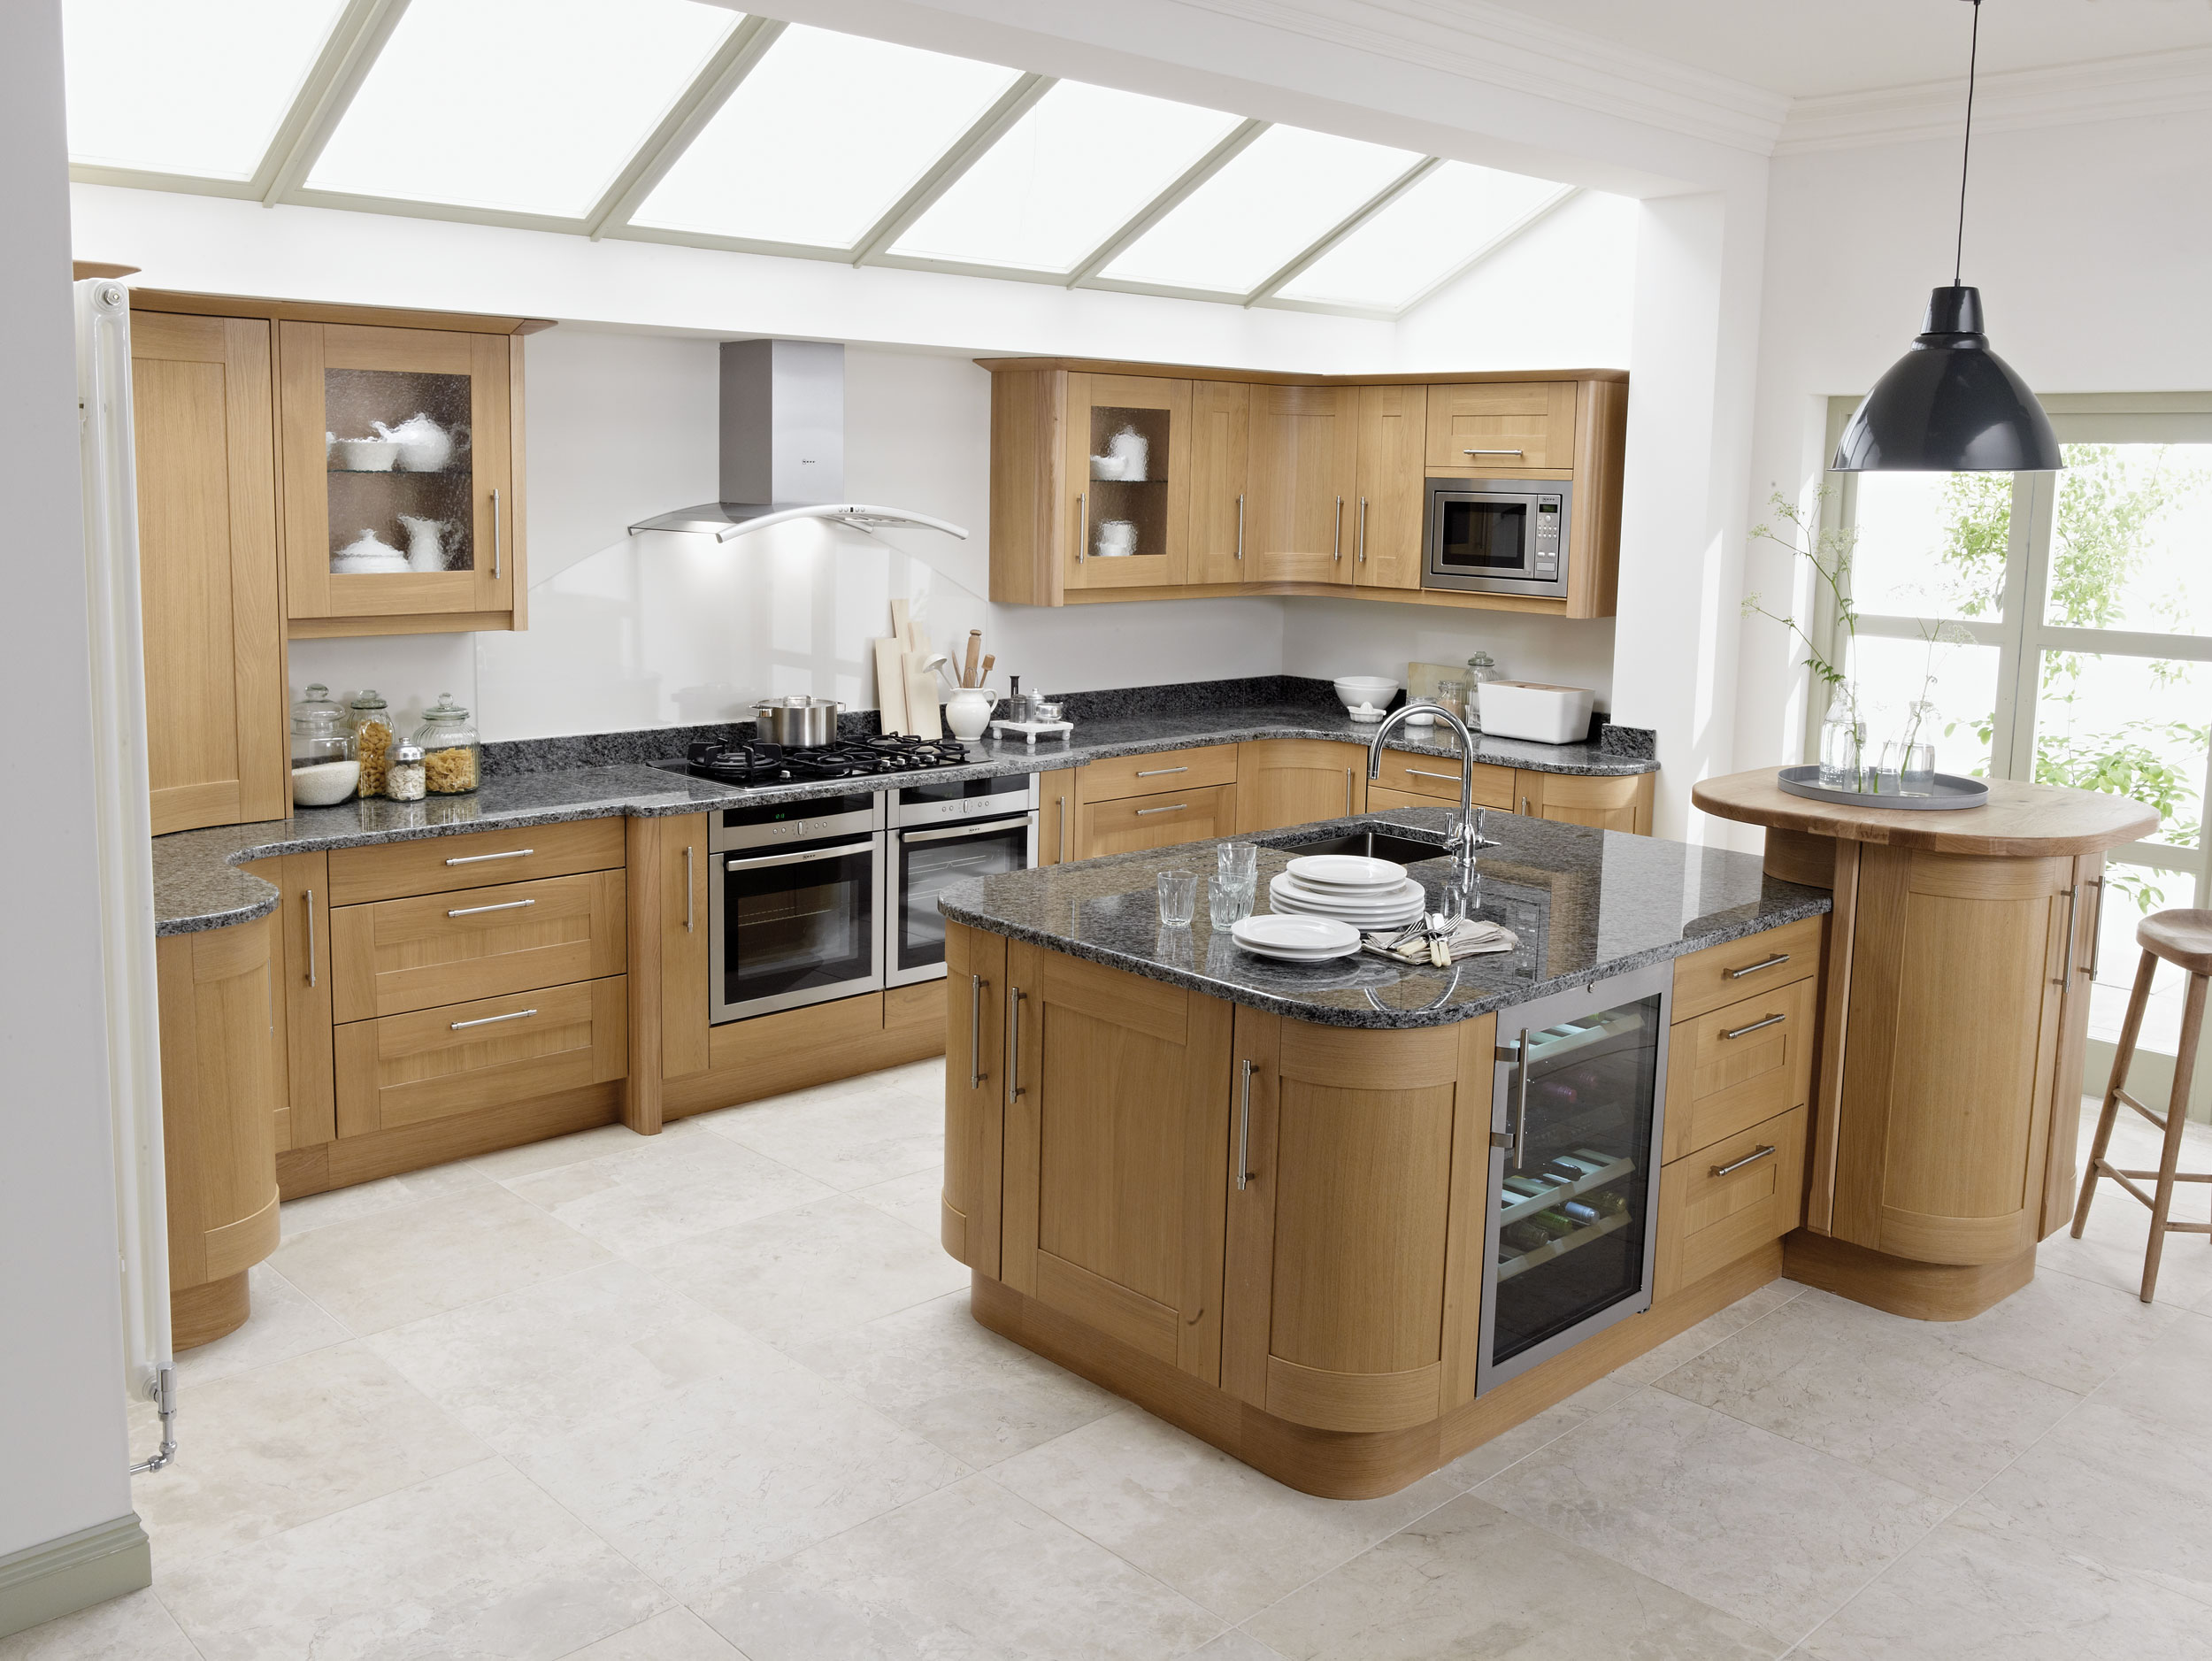 © Eaton Kitchen Design Web Design By Betelguise Web . Full resolution‎  image, nominally Width 2500 Height 1877 pixels, image with #694A2C.